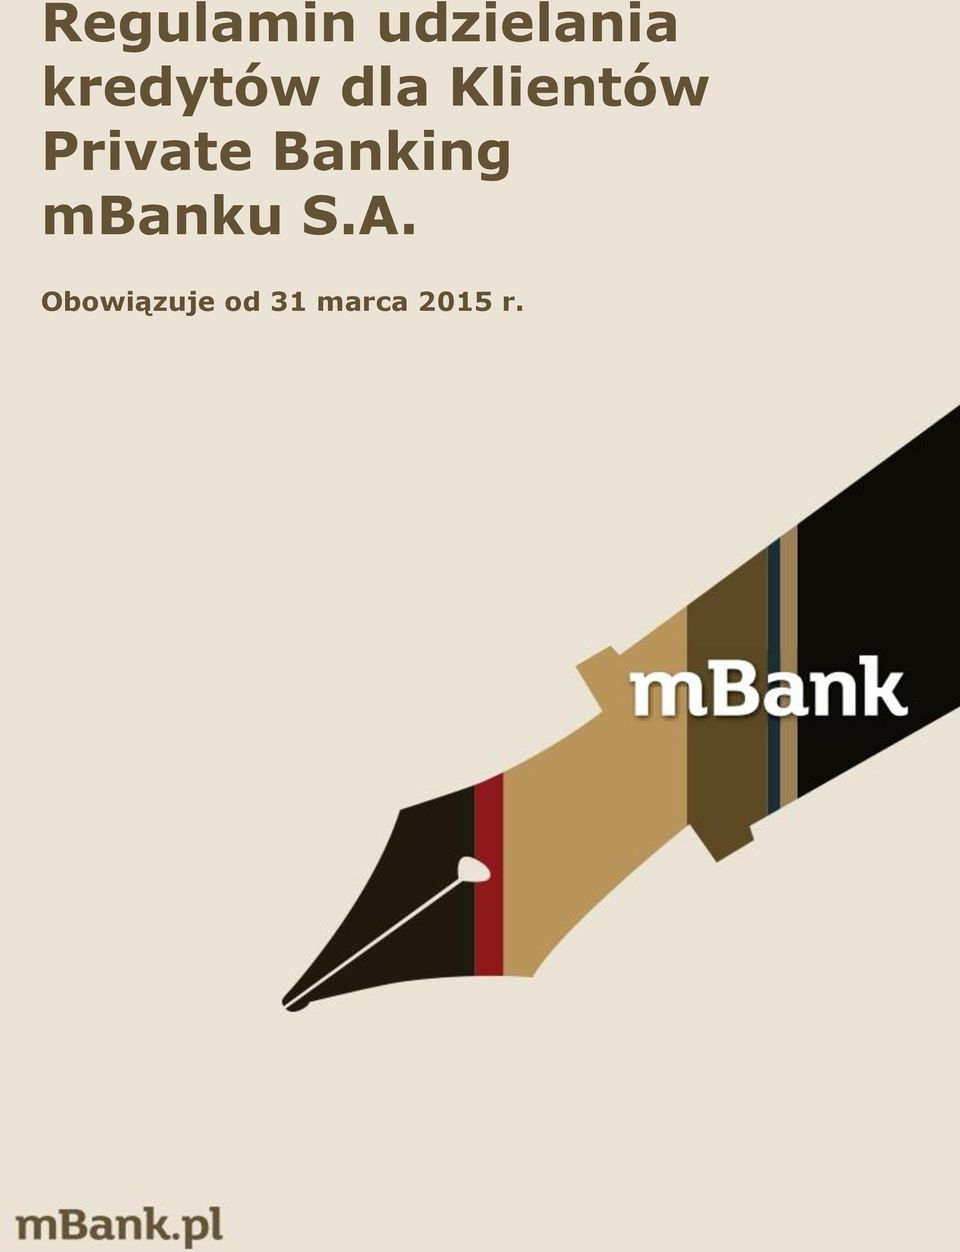 Private Banking mbanku S.